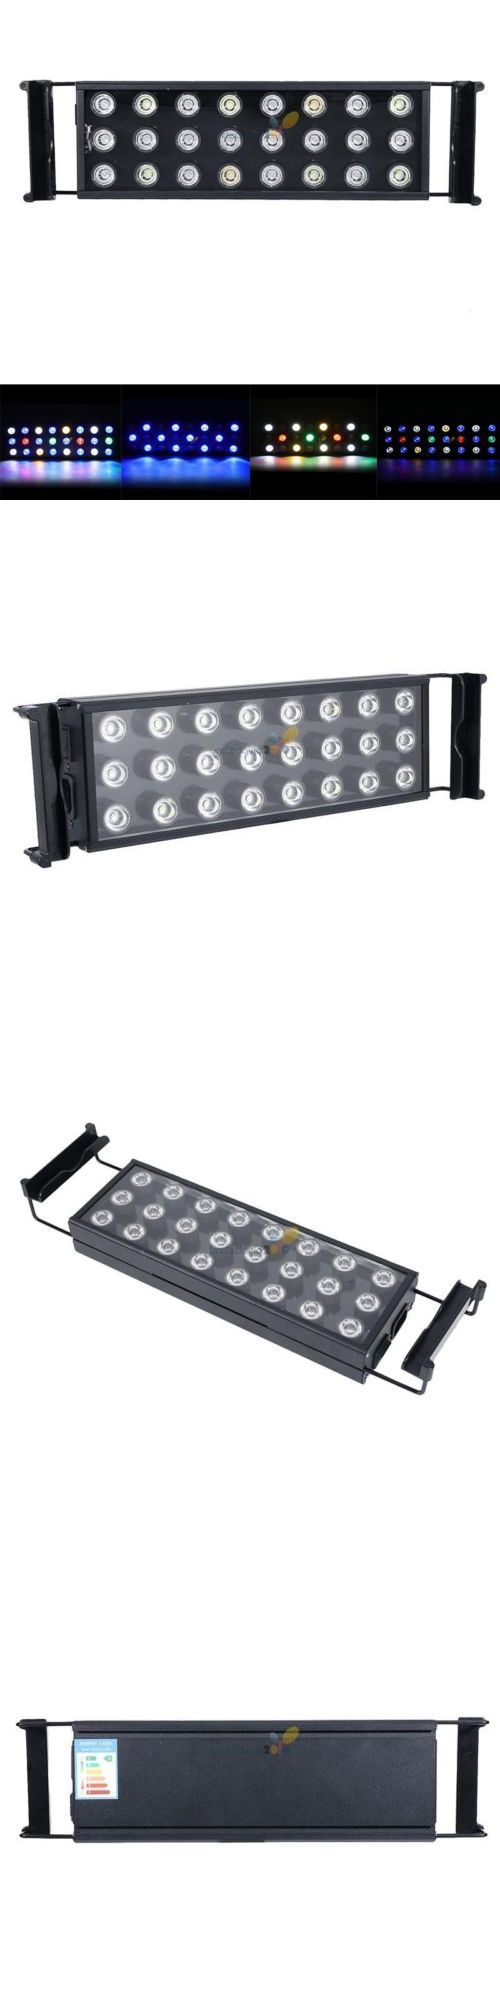 Animals Fish And Aquariums: 72W 24 Inch Led Aquarium Light Bar Remote For Fish Coral Salty Tank Sps Lps BUY IT NOW ONLY: $39.94